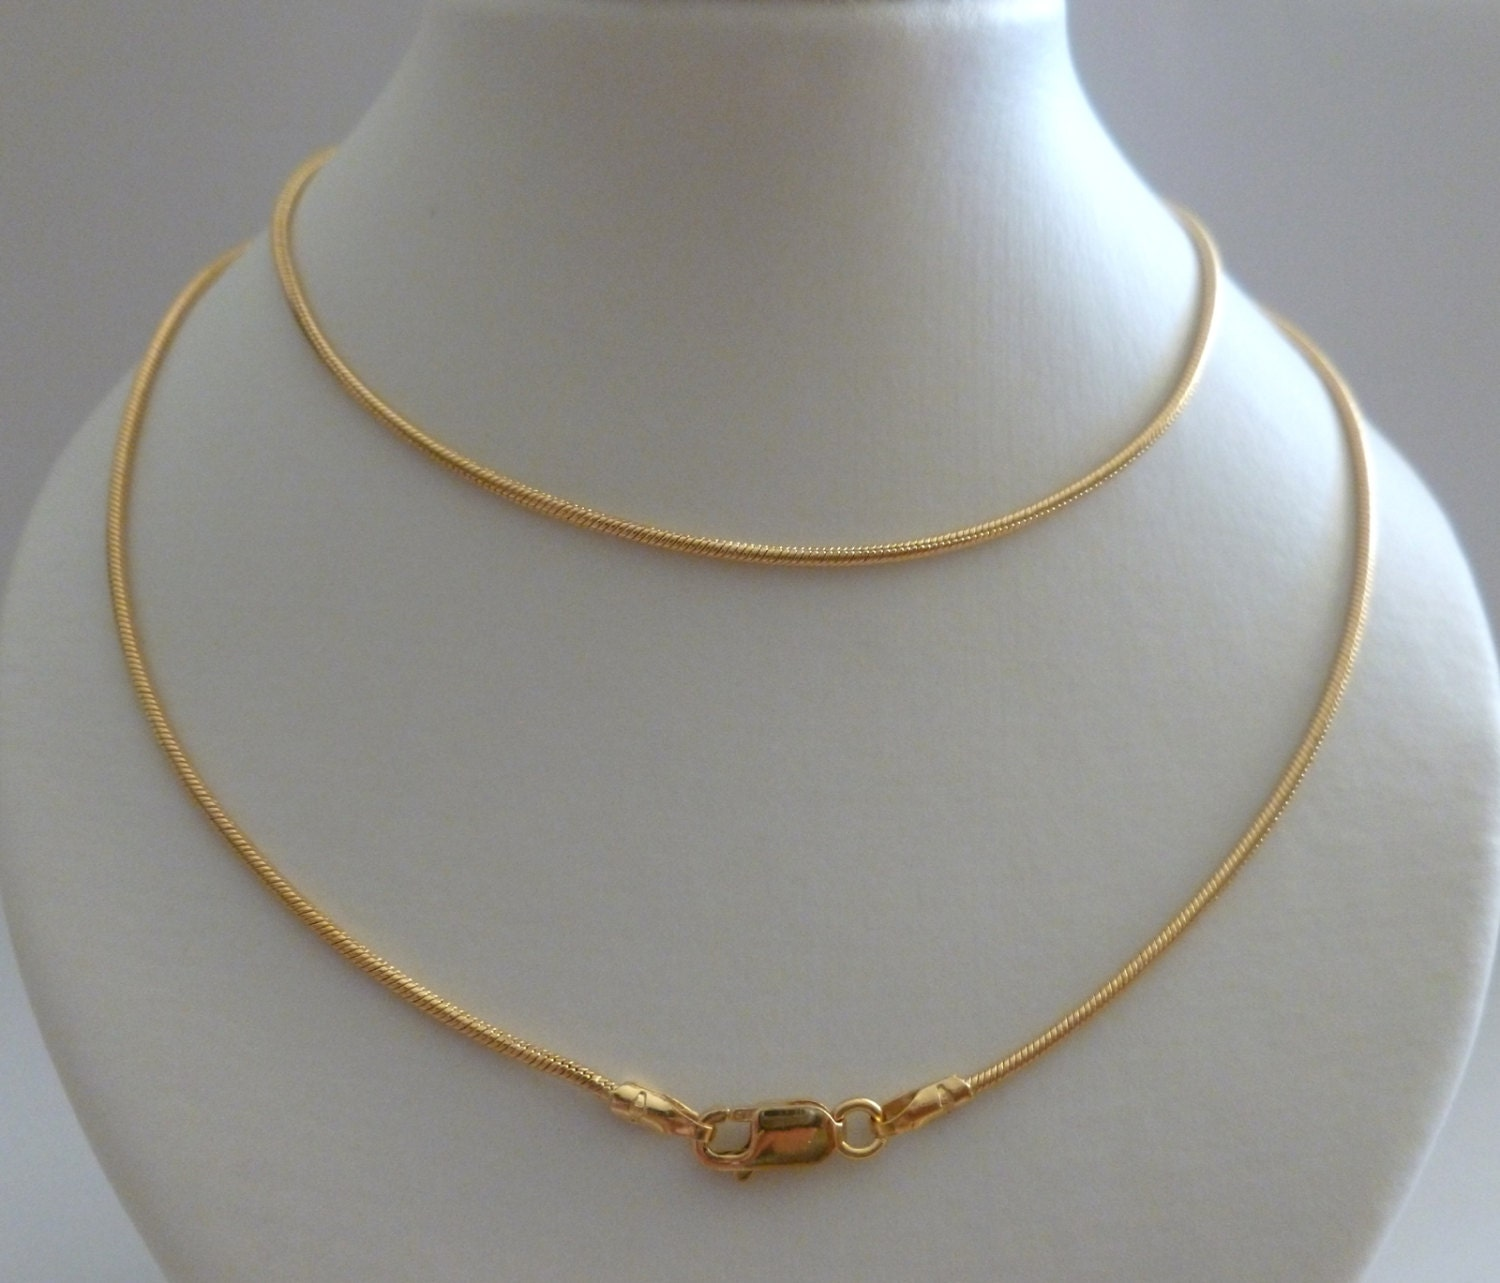 18ct 18k Gold Snake Rope Chain Necklace 750 Solid Gold Snake